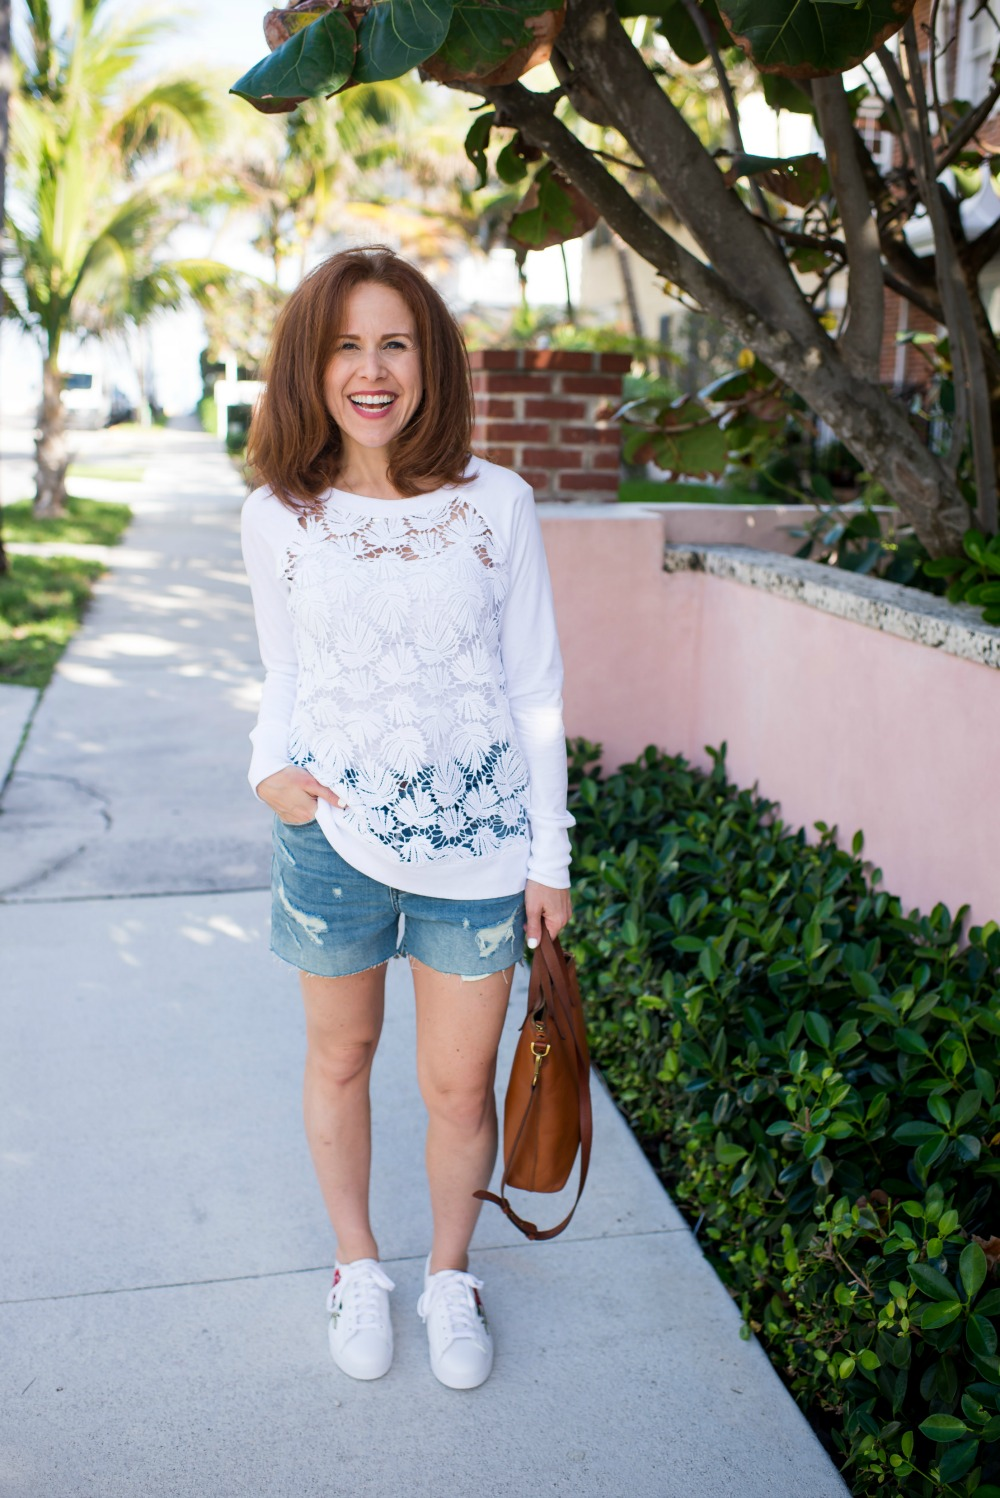 The Spring Sweatshirt - Spring Lace Sweatshirt by popular Florida style blogger The Modern Savvy